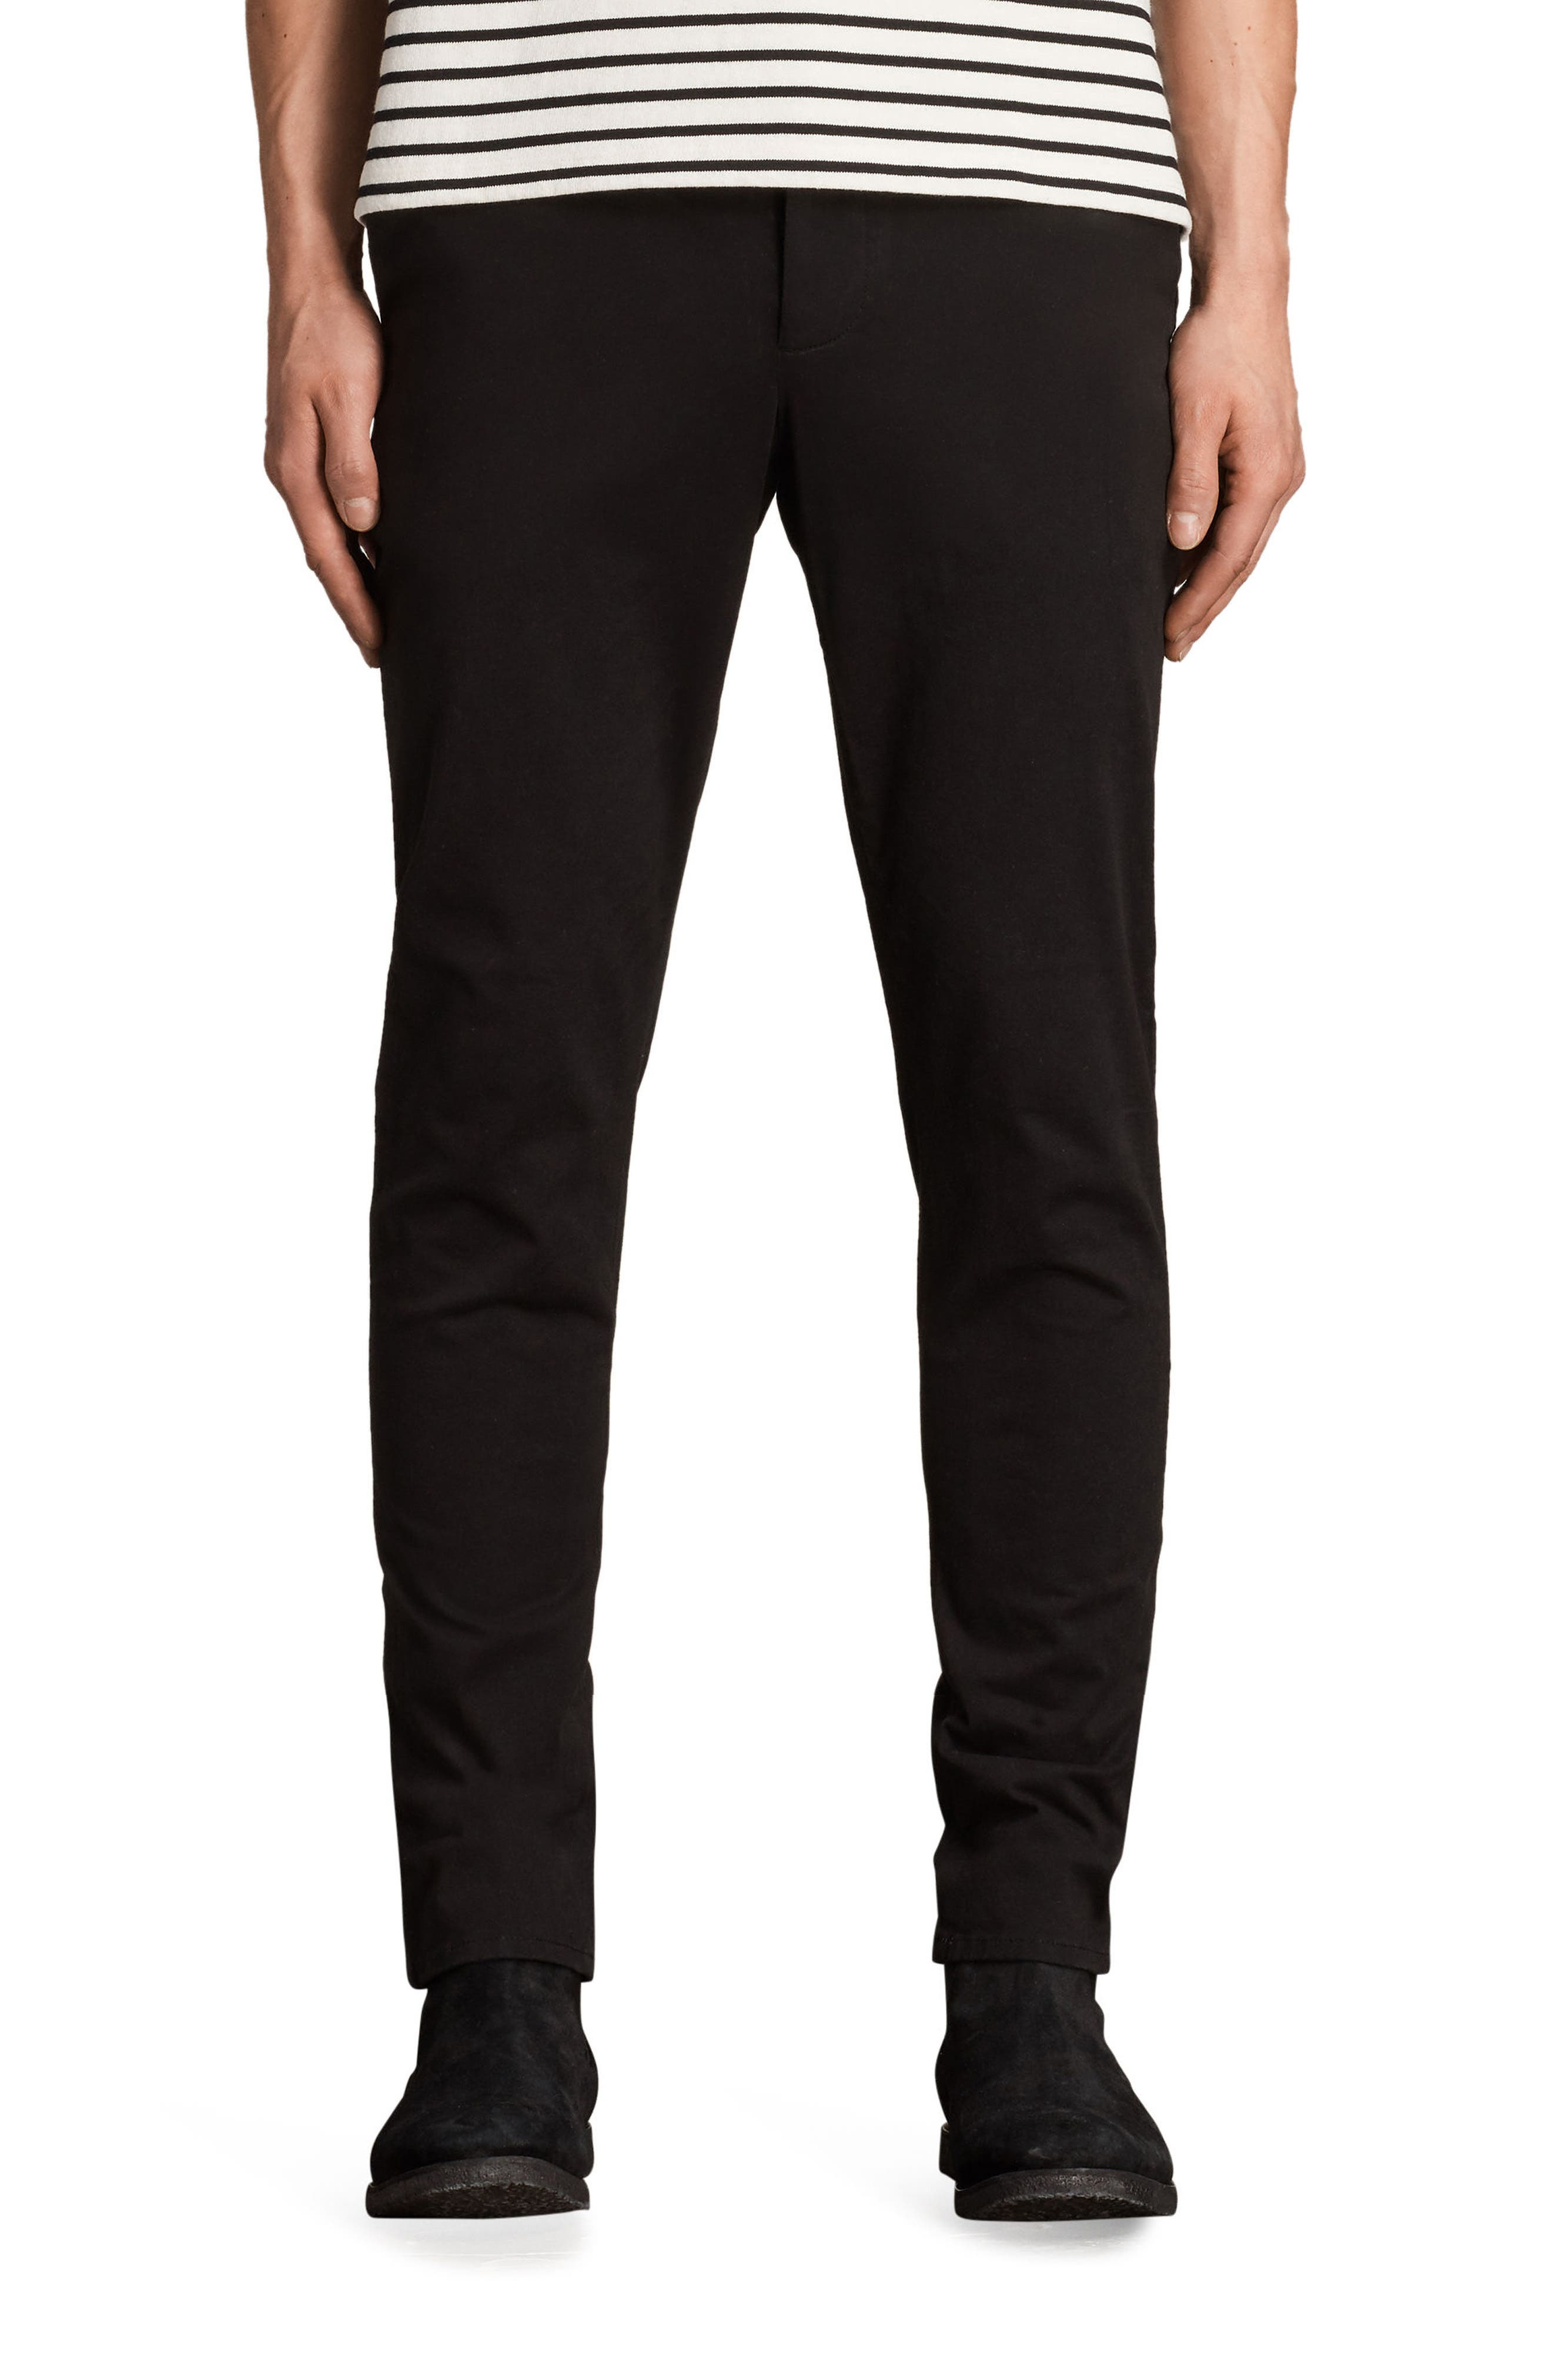 Park Skinny Fit Chino Pants,                         Main,                         color, Black